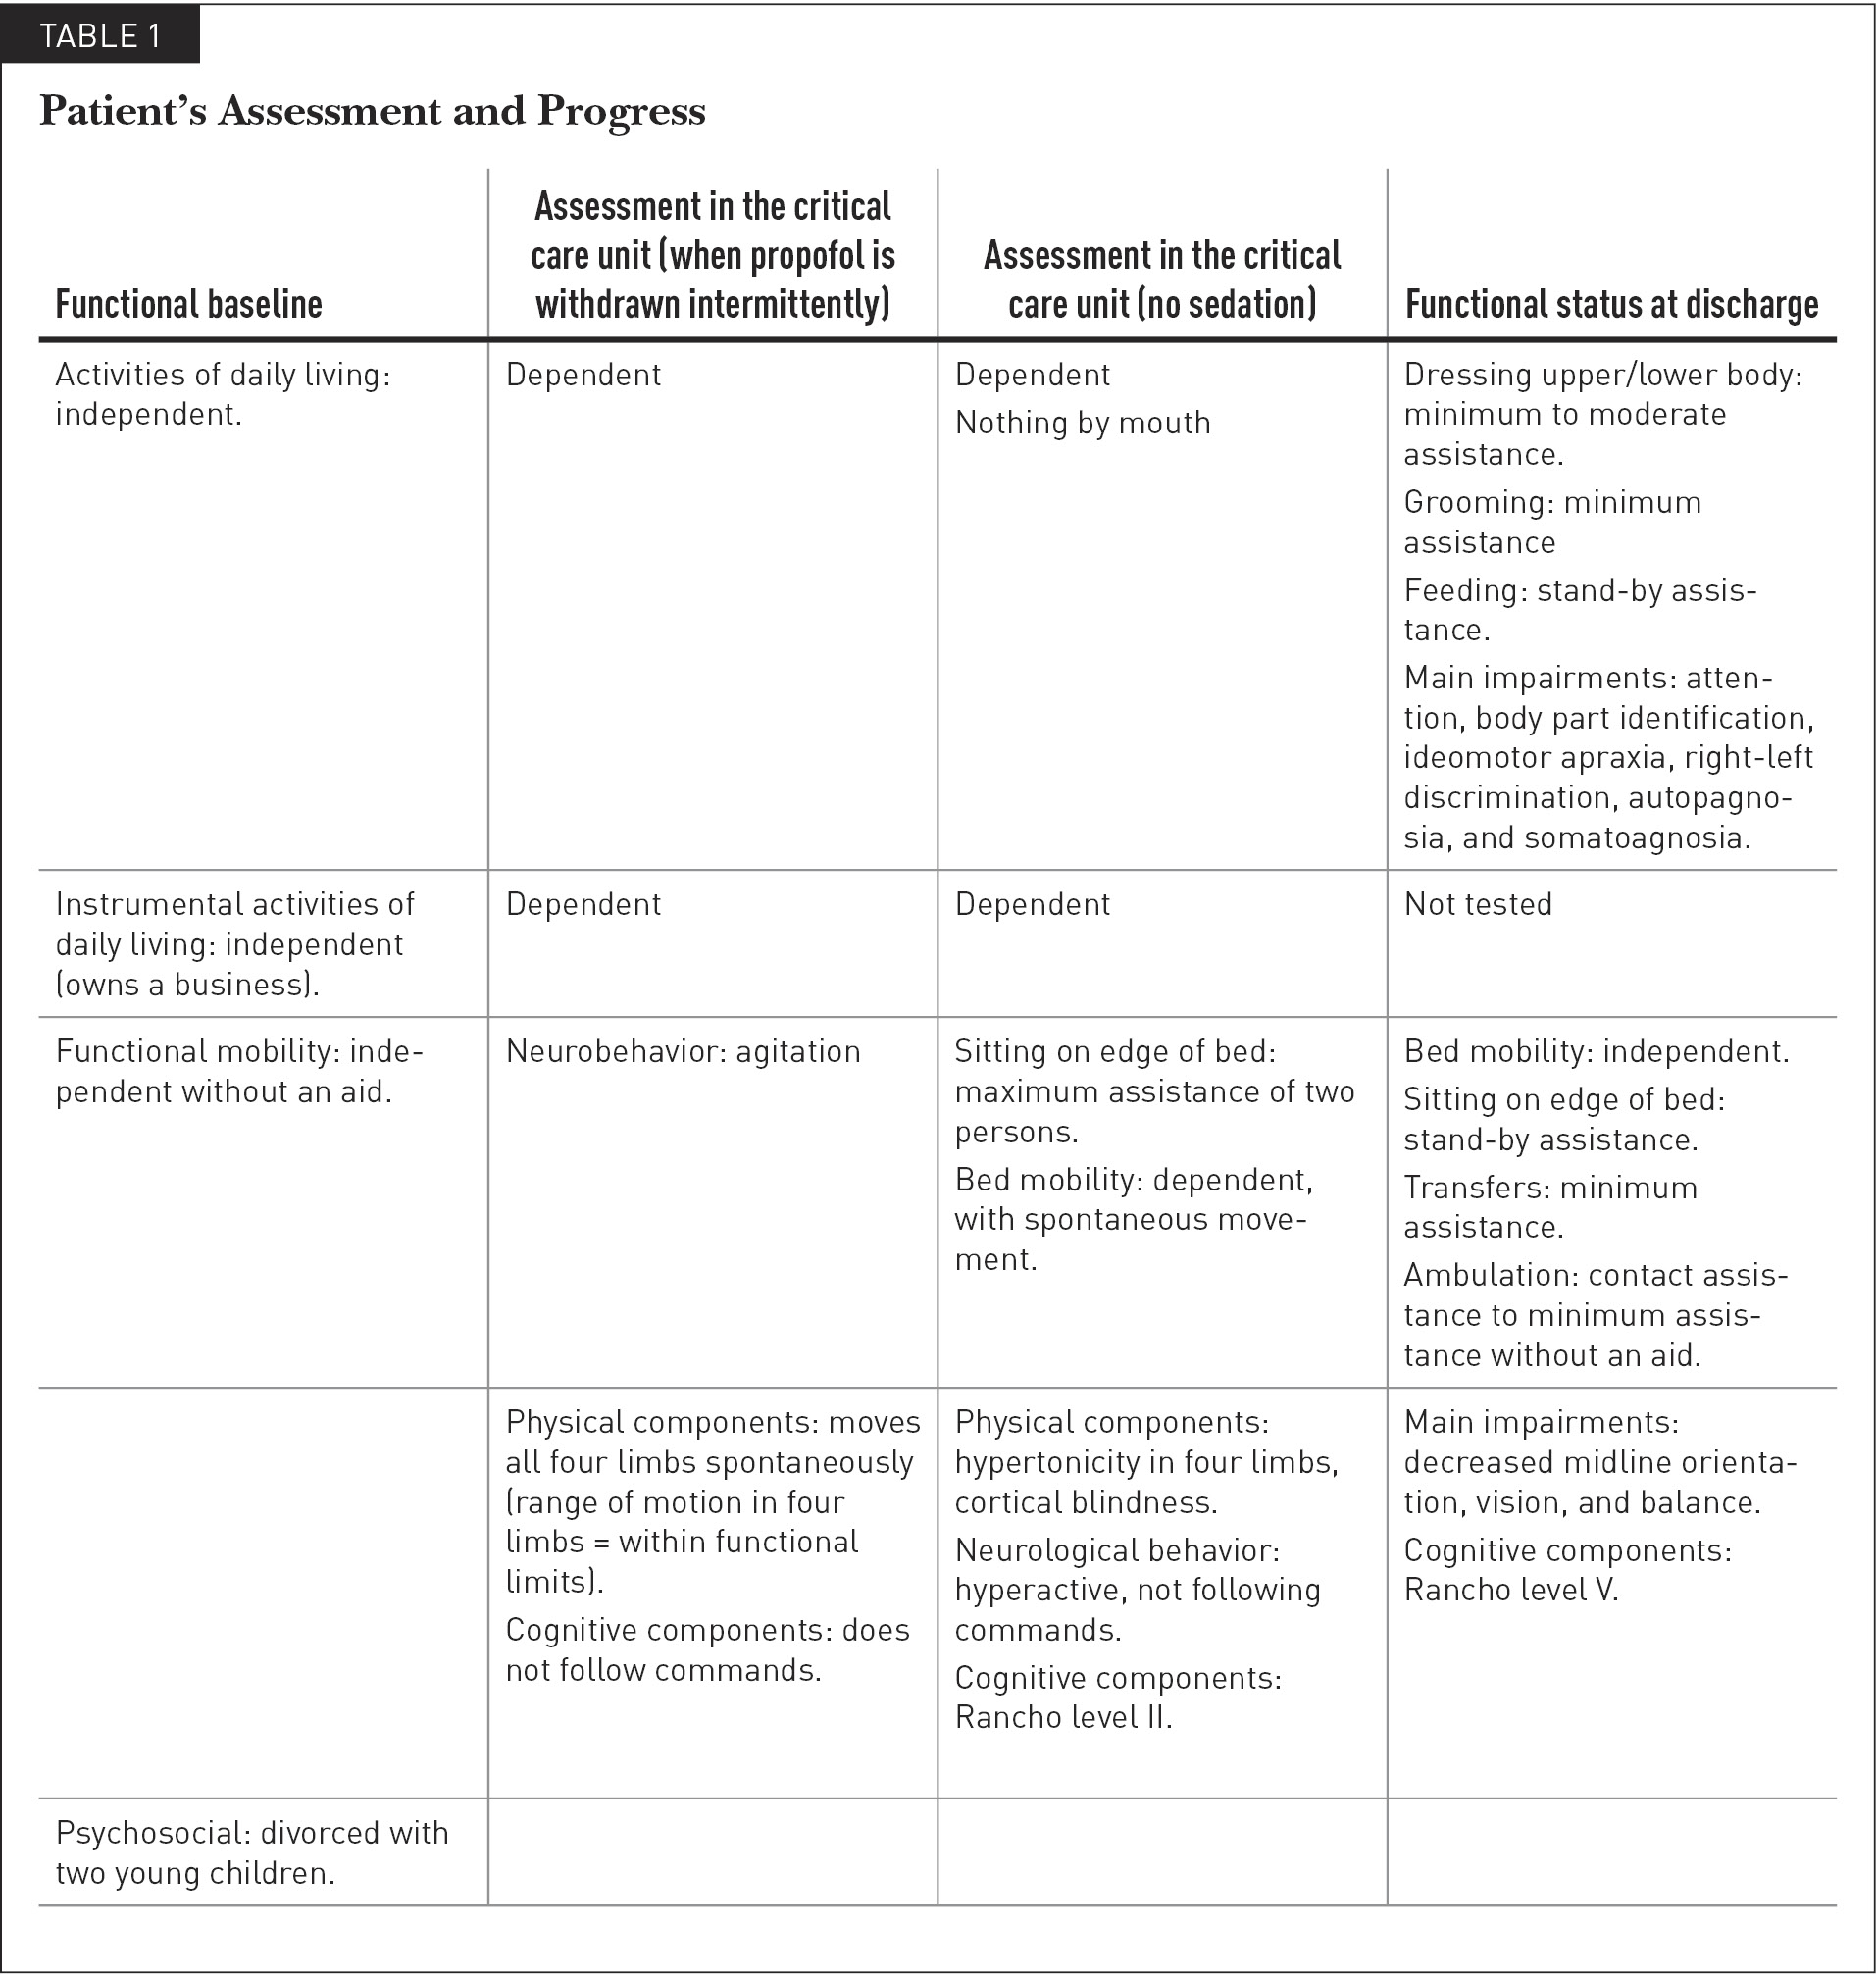 Patient's Assessment and Progress